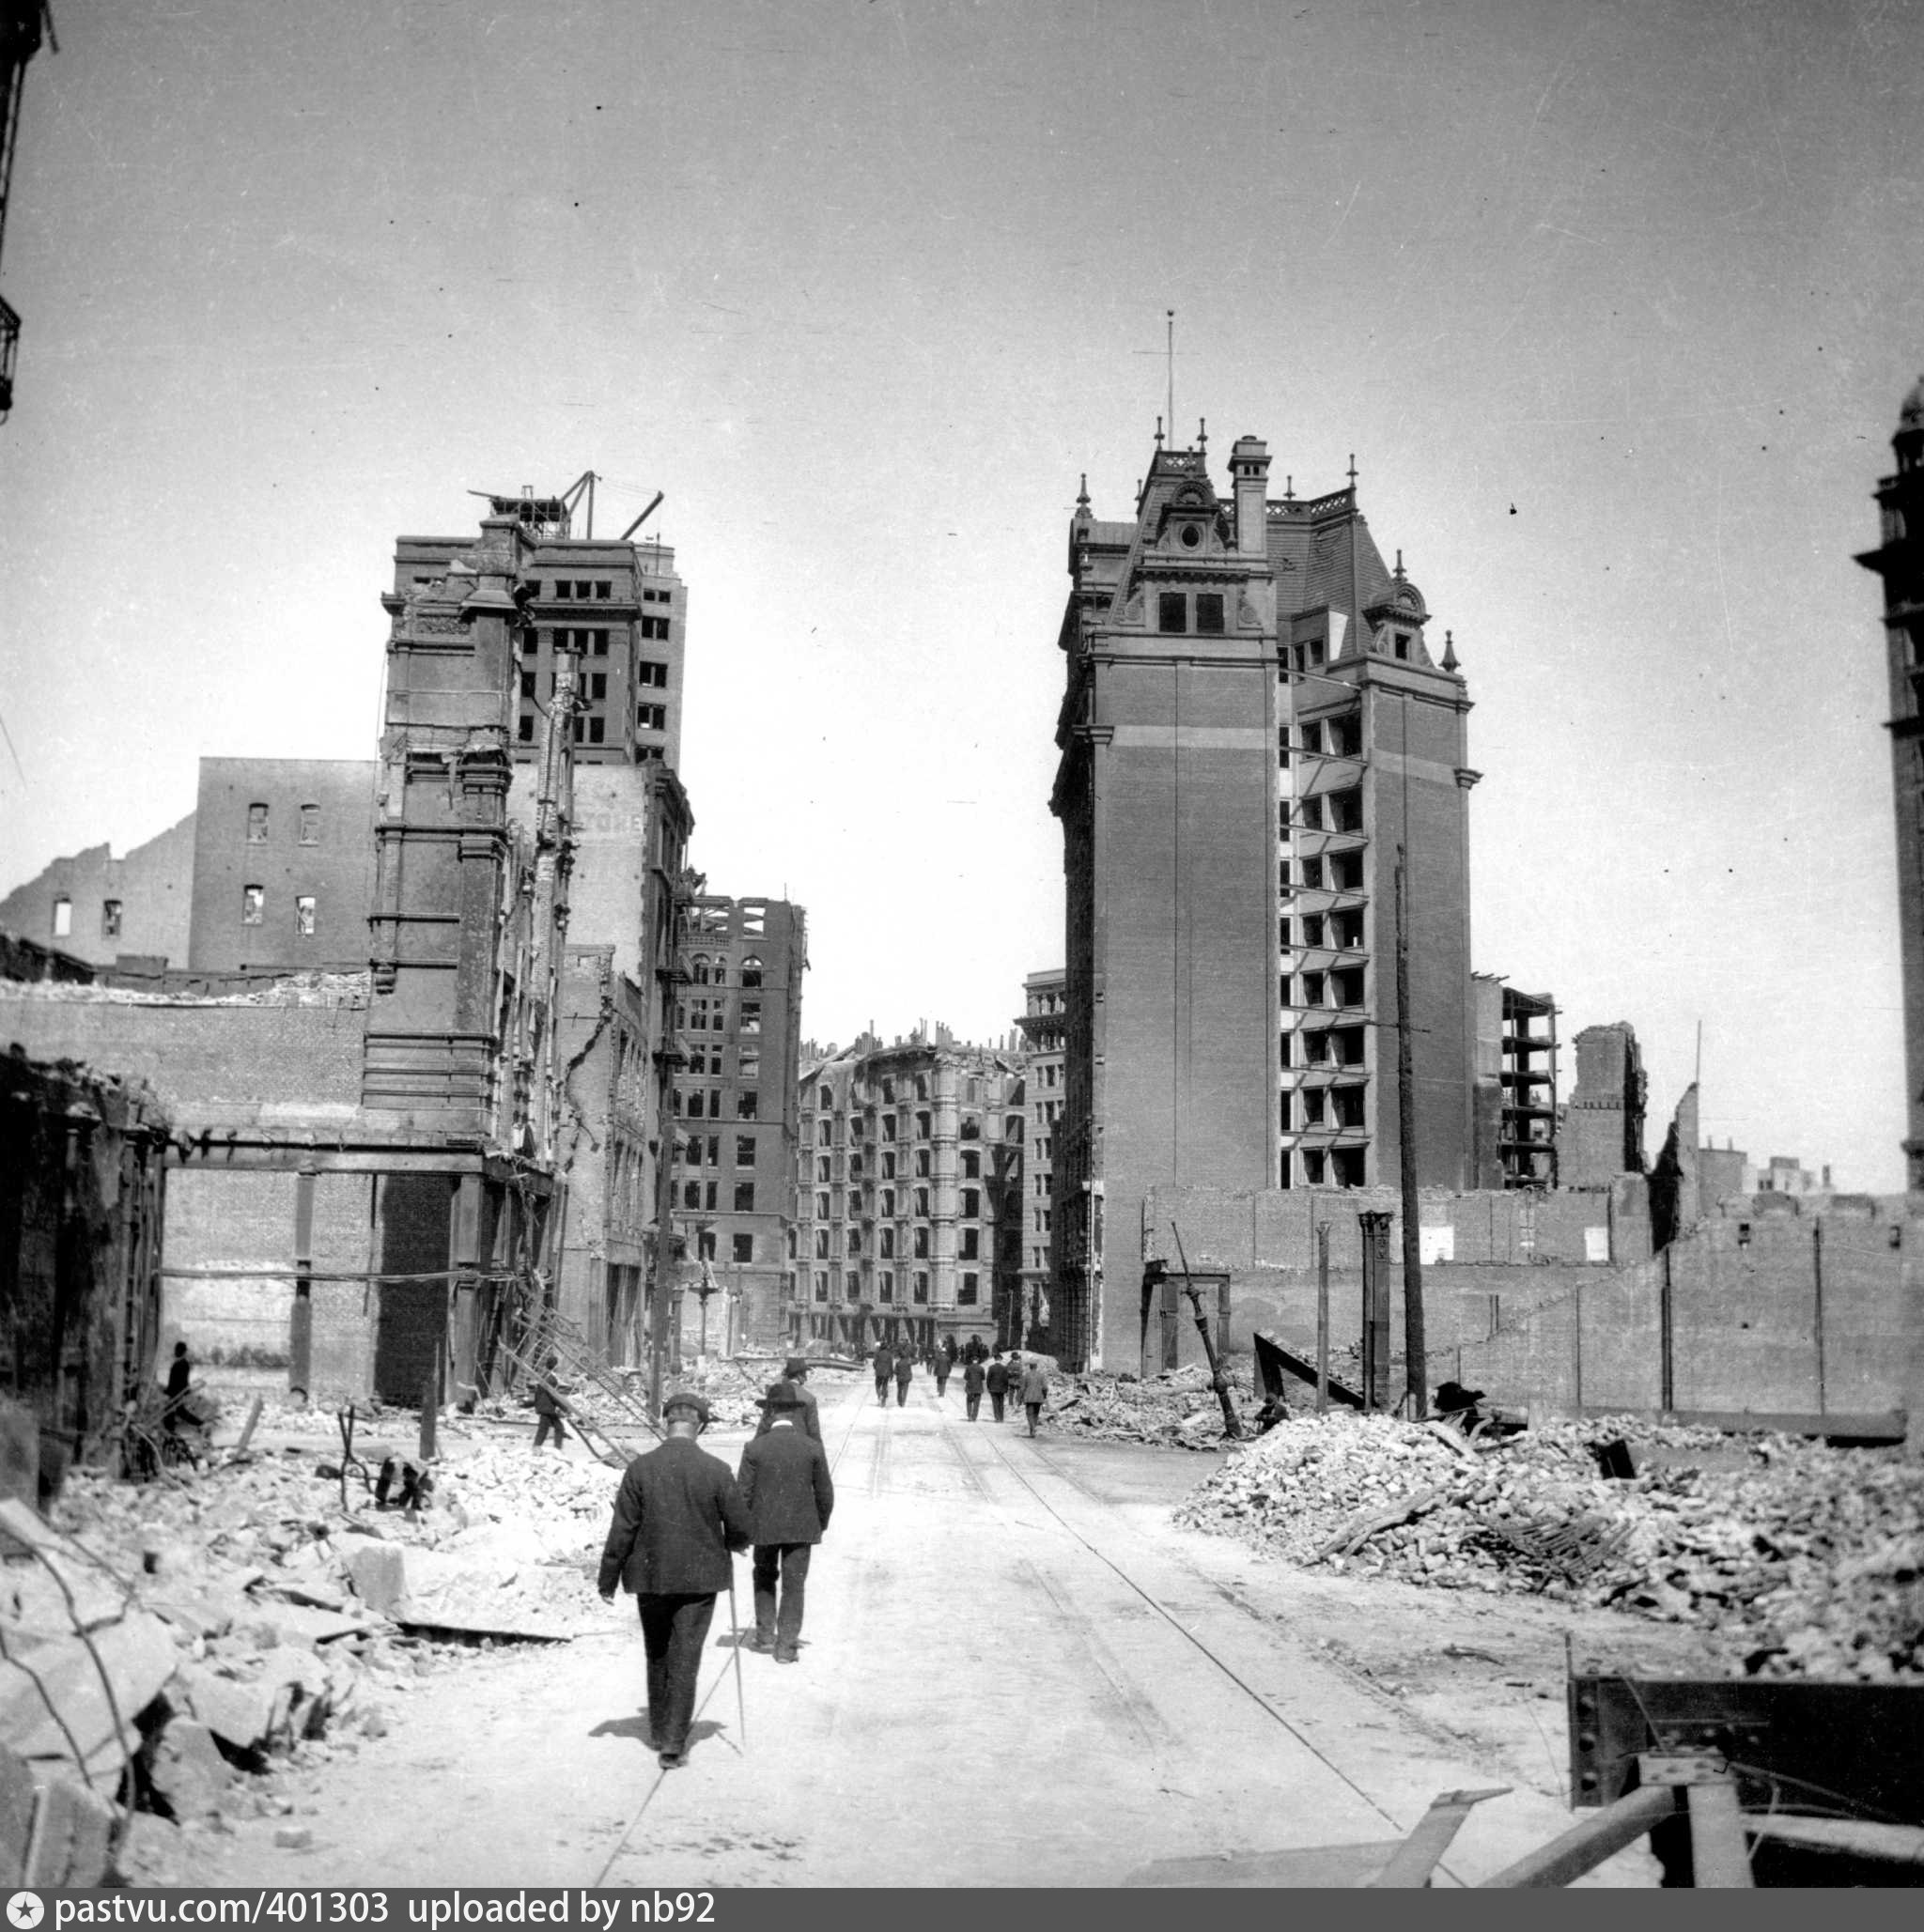 san francisco earthquake research paper The san francisco earthquake of april 18, 1906 ranks as one of the most significant earthquakes of all time today, its importance comes more from the wealth of scientific knowledge derived from it than from its sheer size.